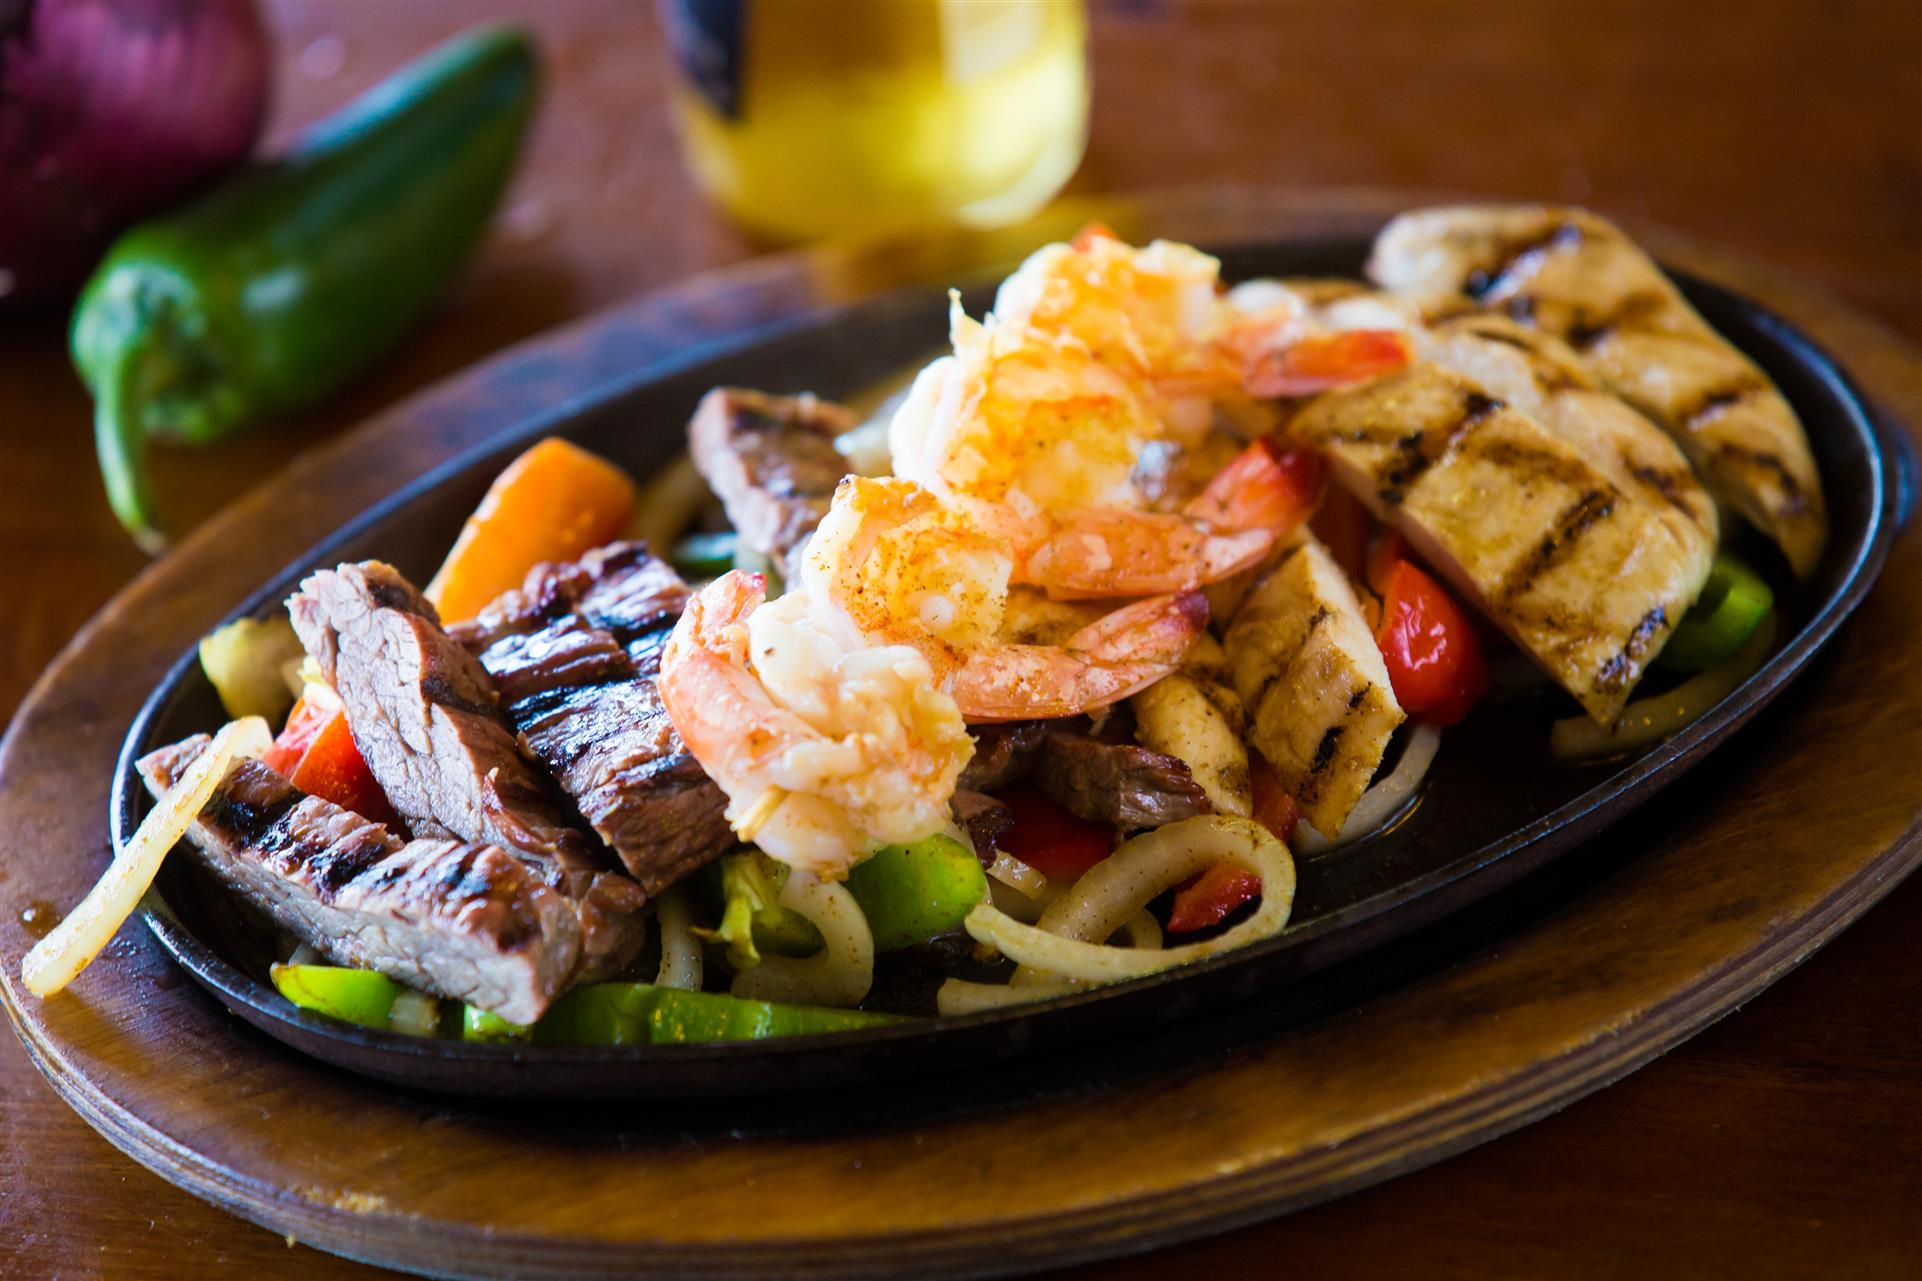 Steak and chicken fajitas over vegetables